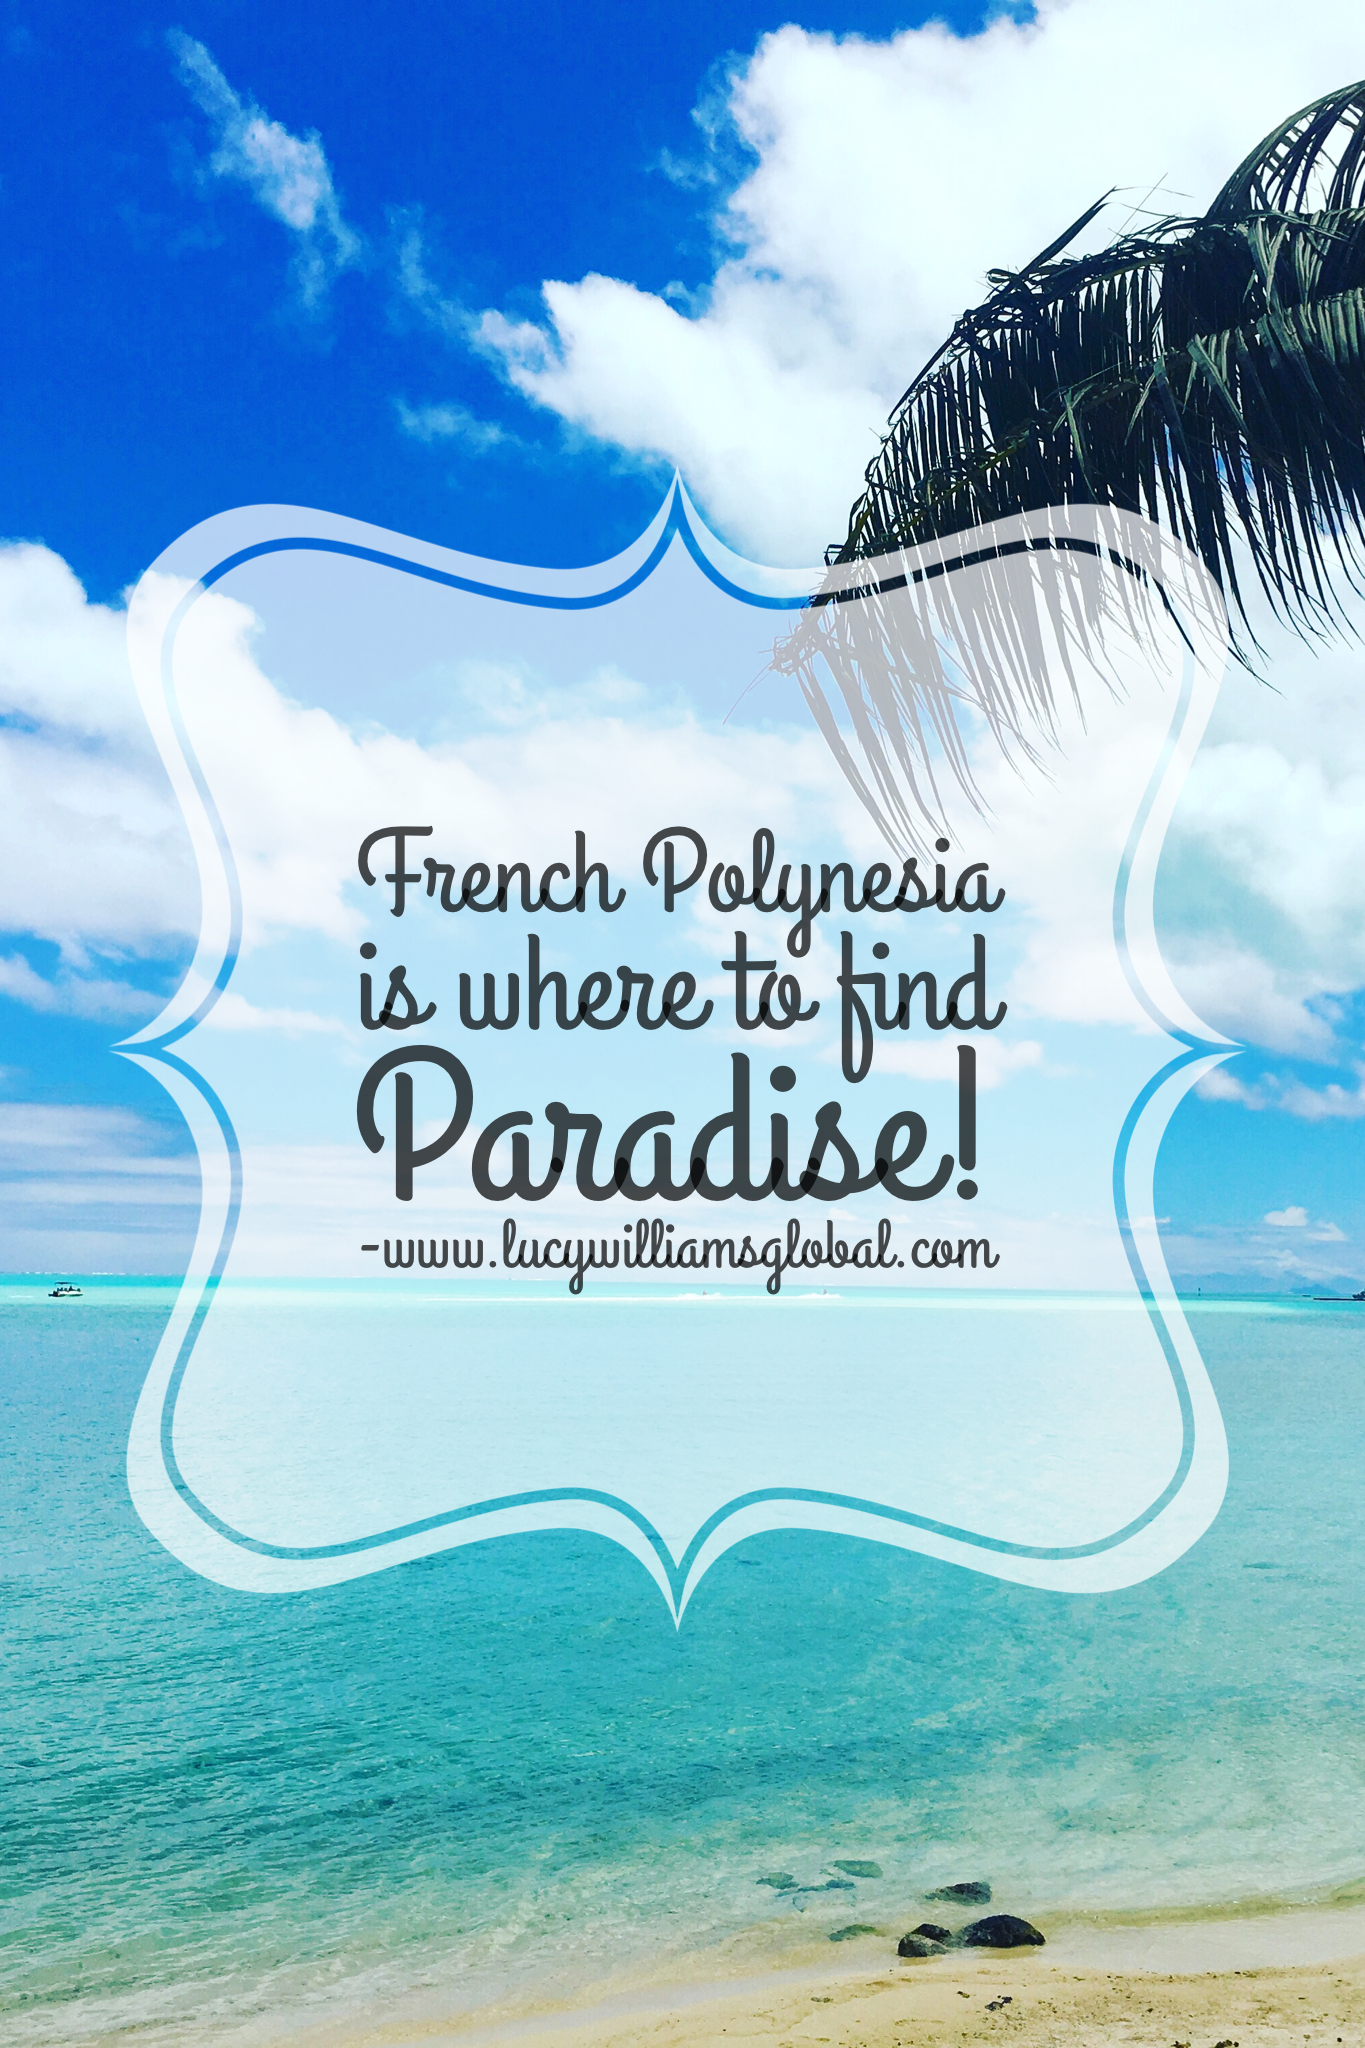 French Polynesia is where to find Paradise - UK - Lucy Williams Global